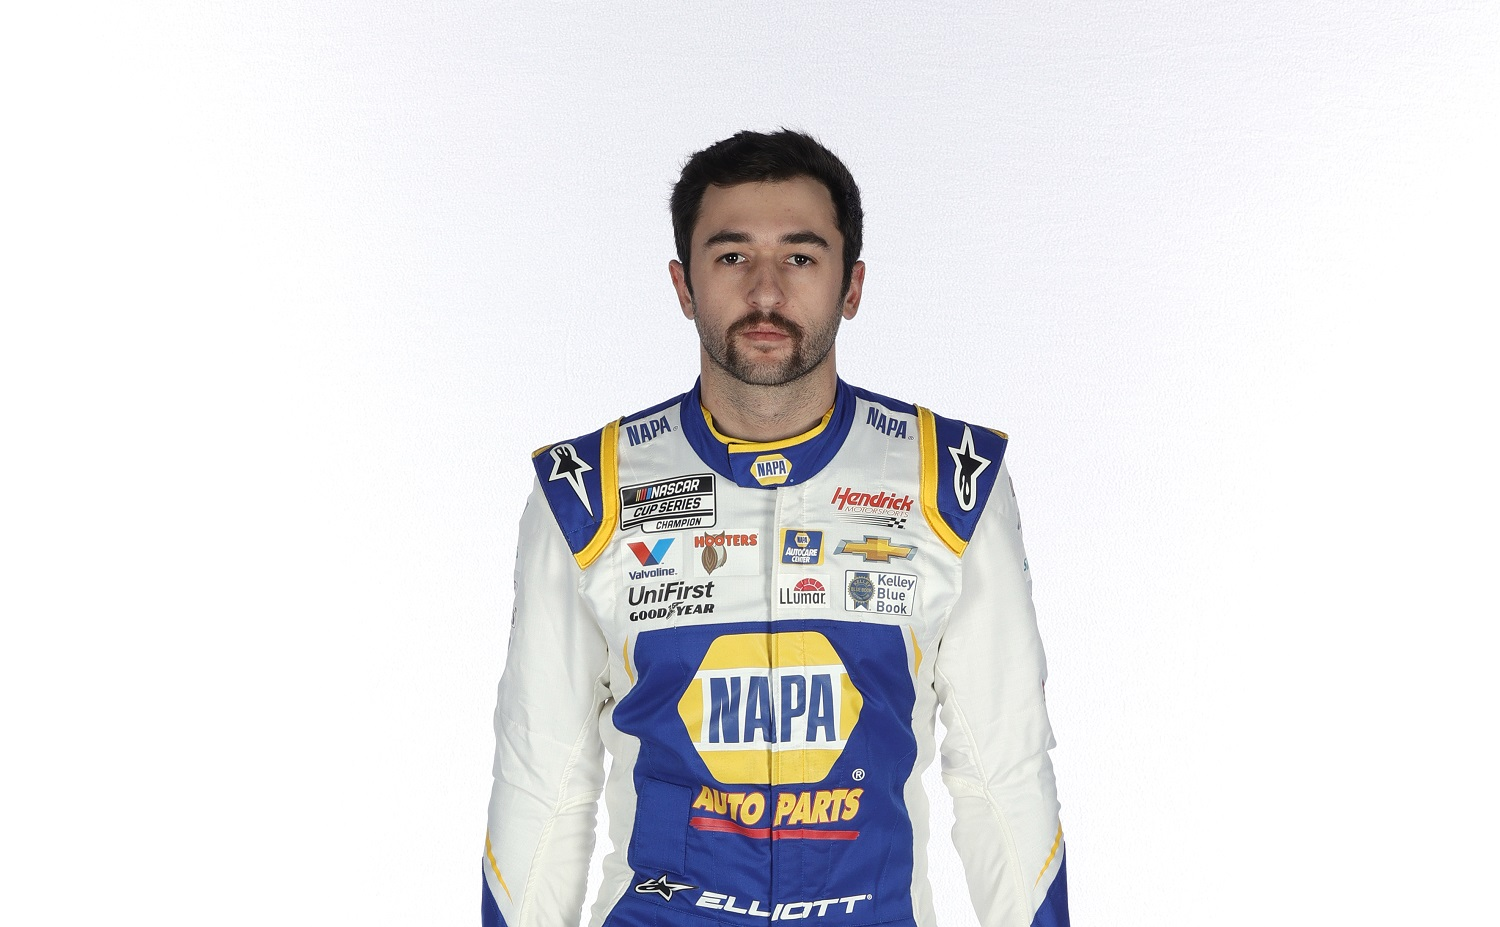 Chase Elliott comes into the 2021 NASCAR Cup Series as the defending champion.